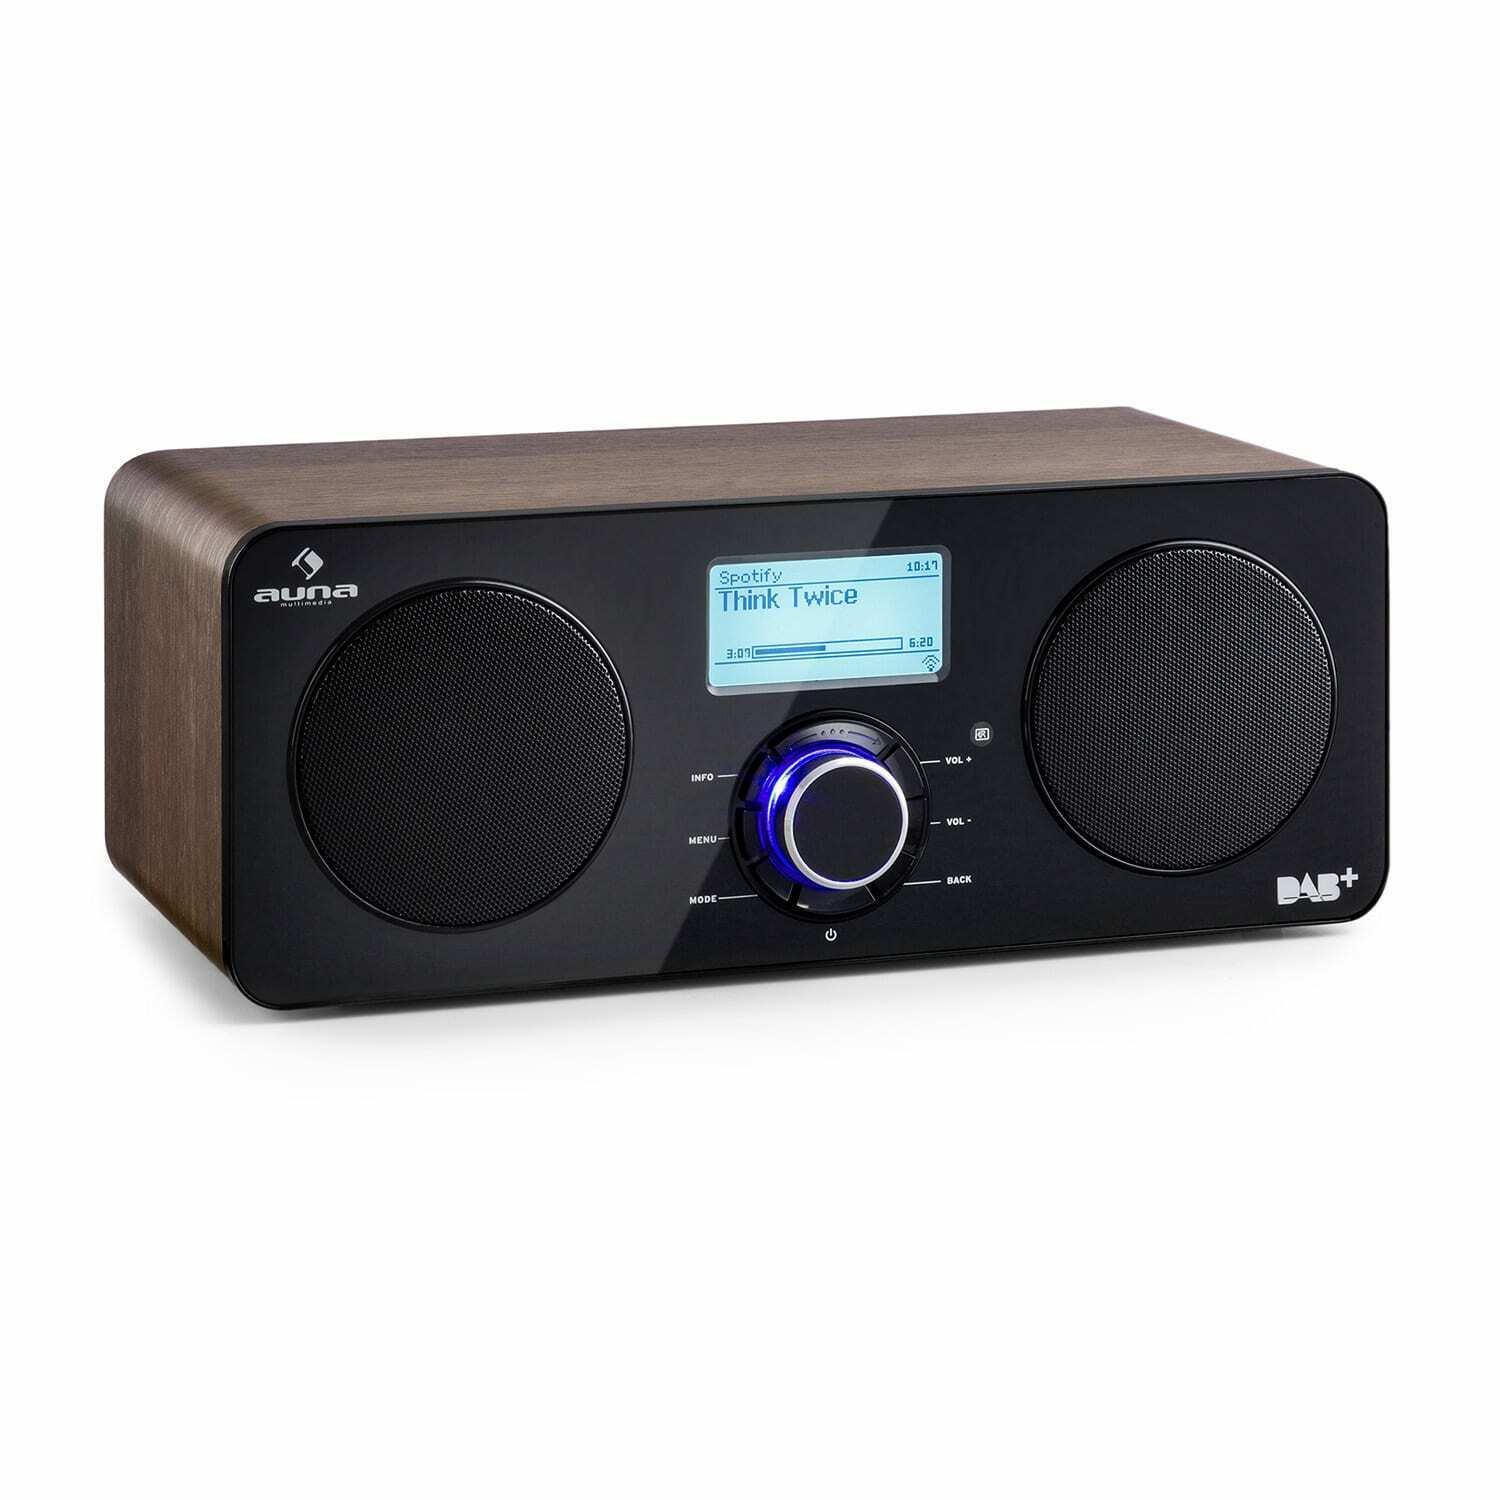 internetradio dab digitalradio wecker holz retro vintage bluetooth spotify wlan eur 99 99. Black Bedroom Furniture Sets. Home Design Ideas